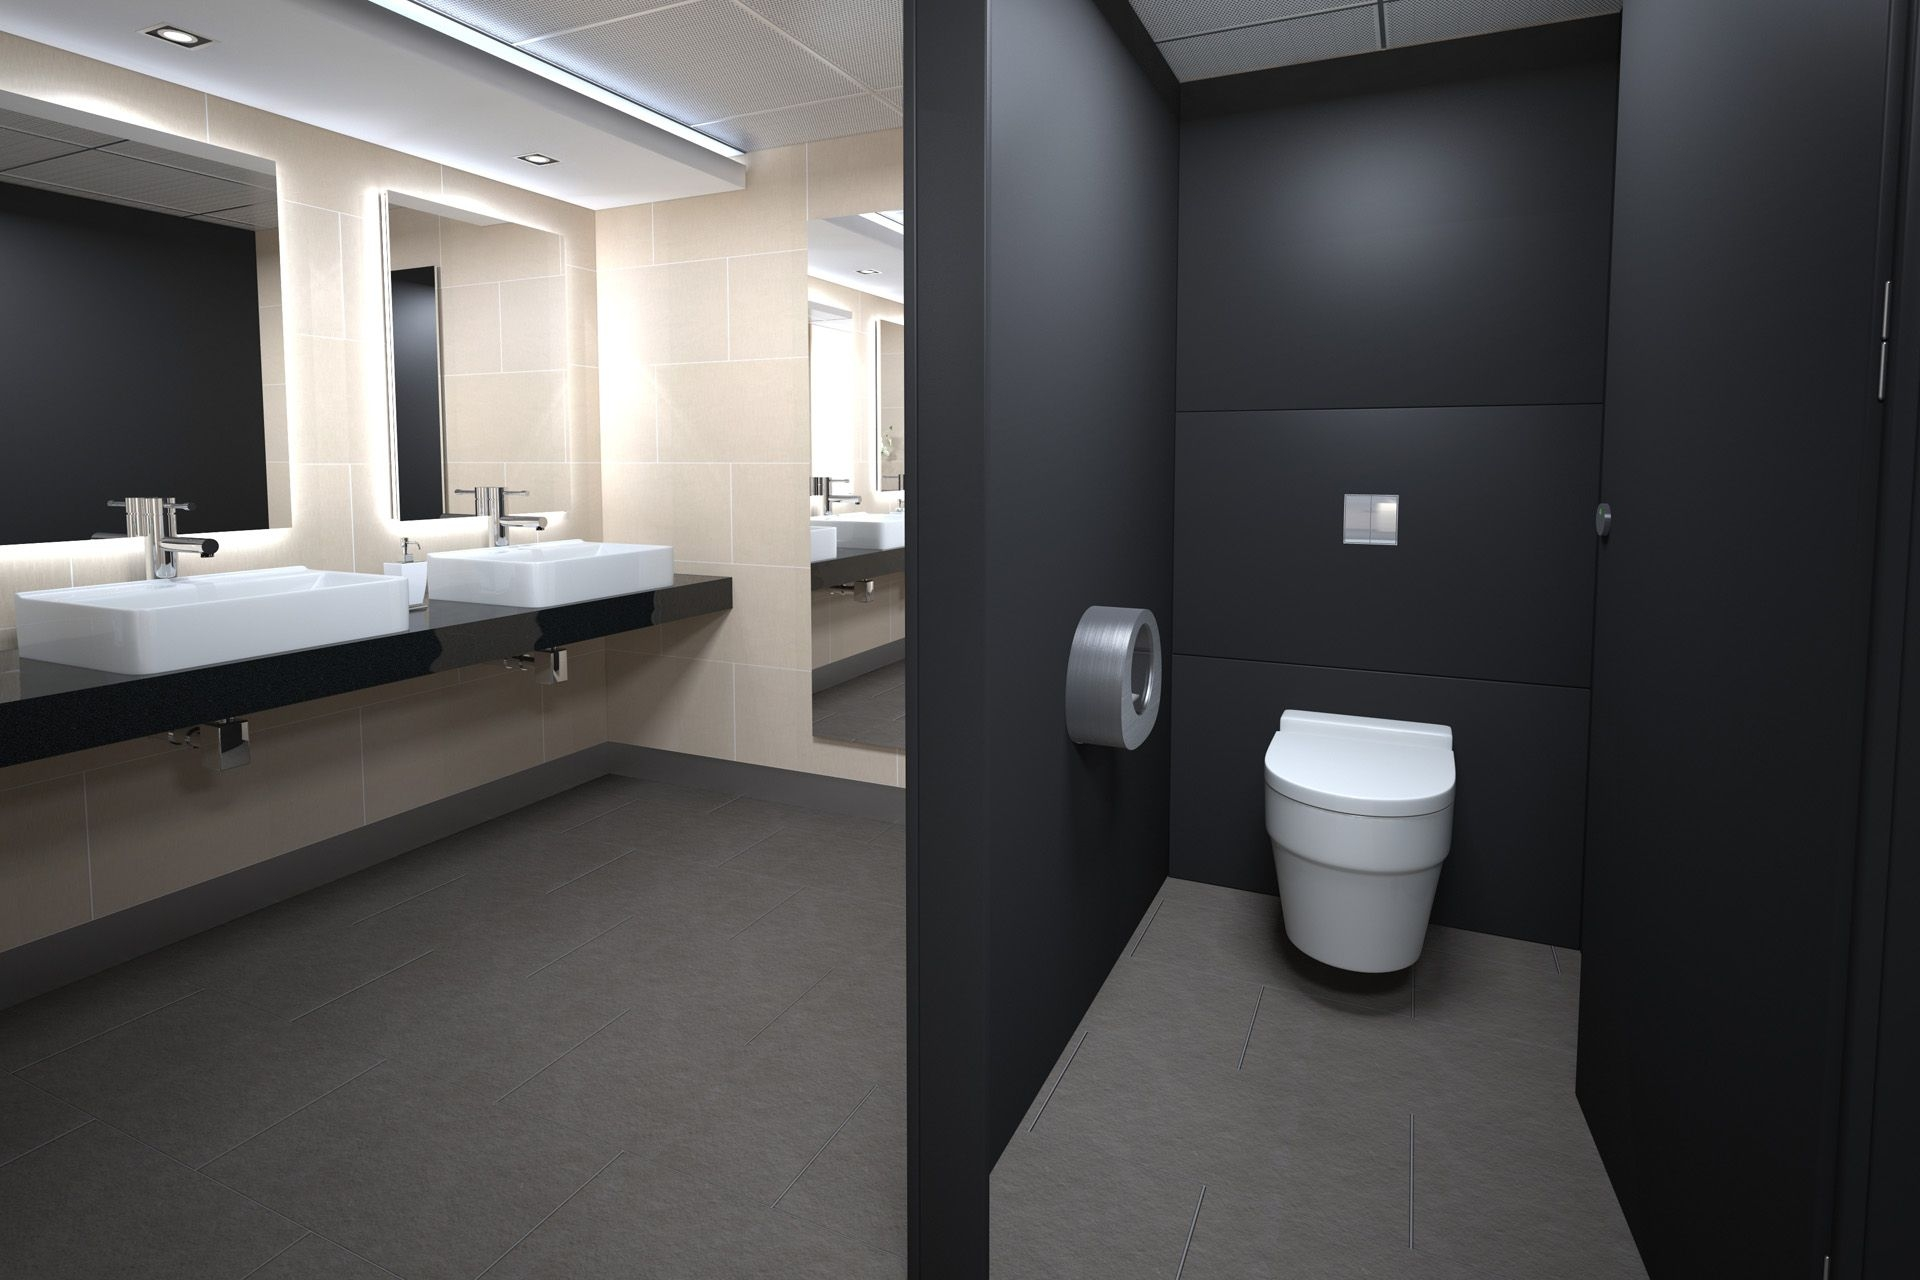 images for office toilet design wc design